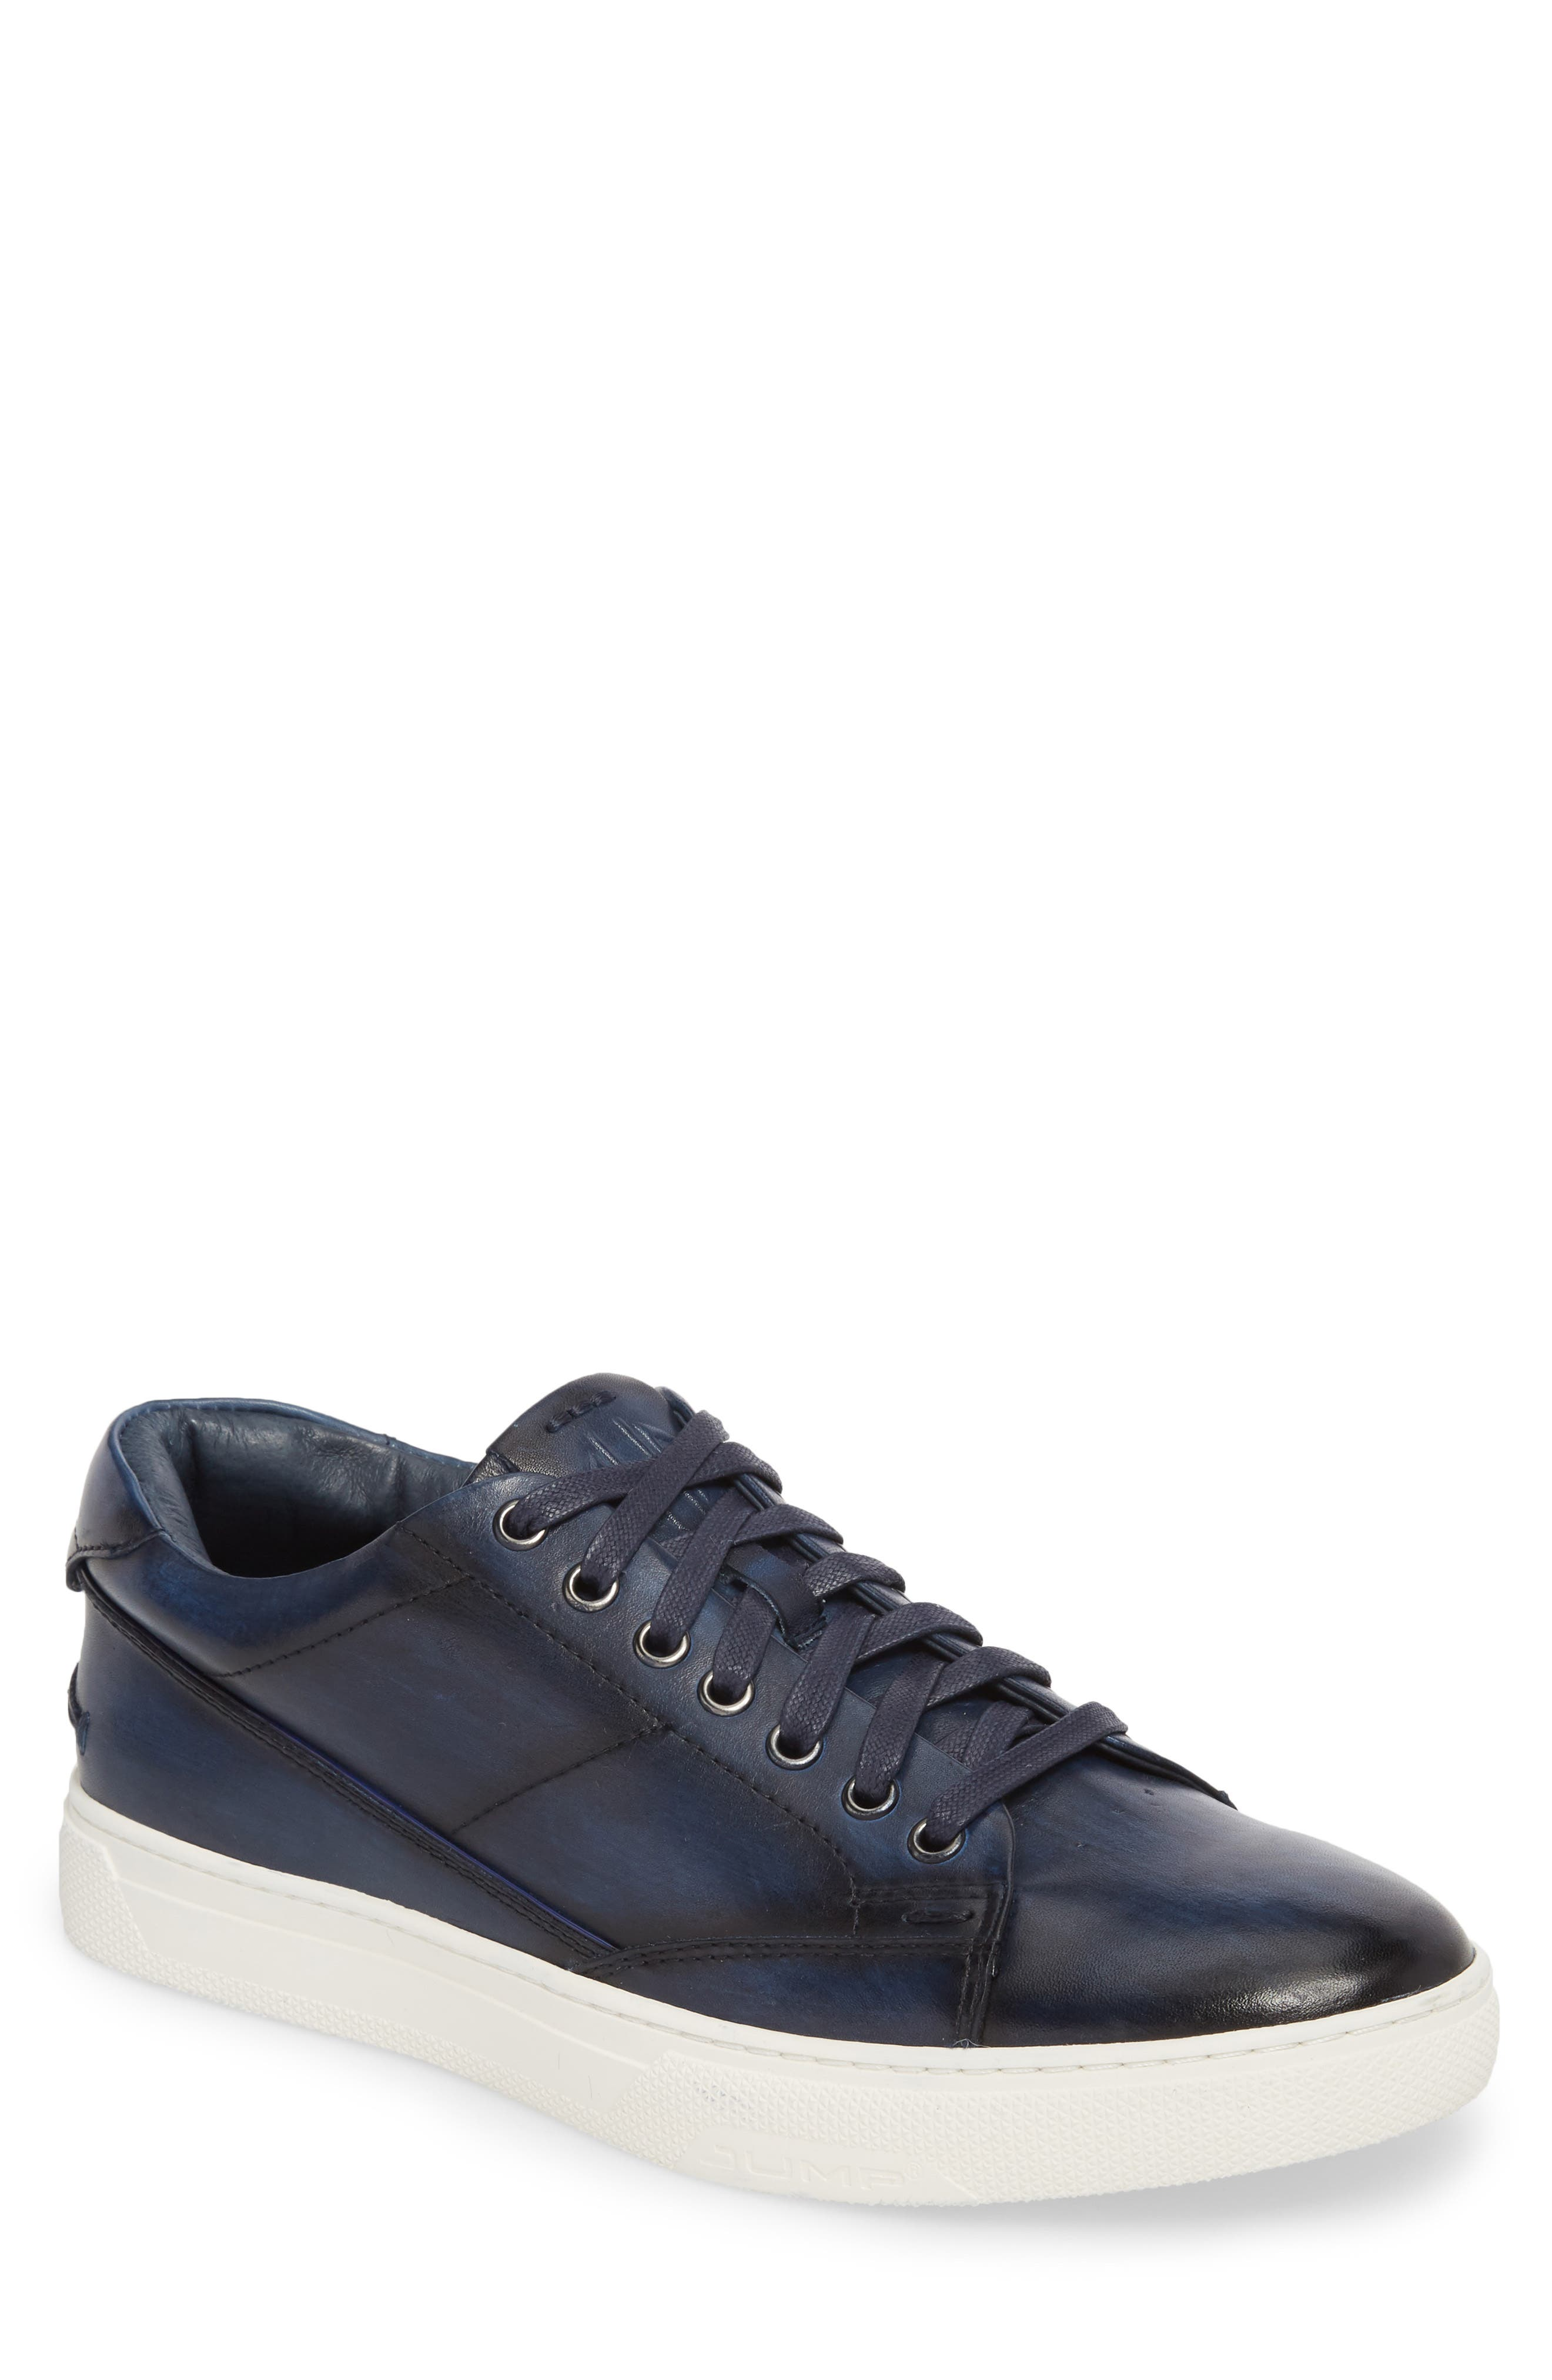 Sweeney Low Top Sneaker,                             Main thumbnail 1, color,                             NAVY LEATHER